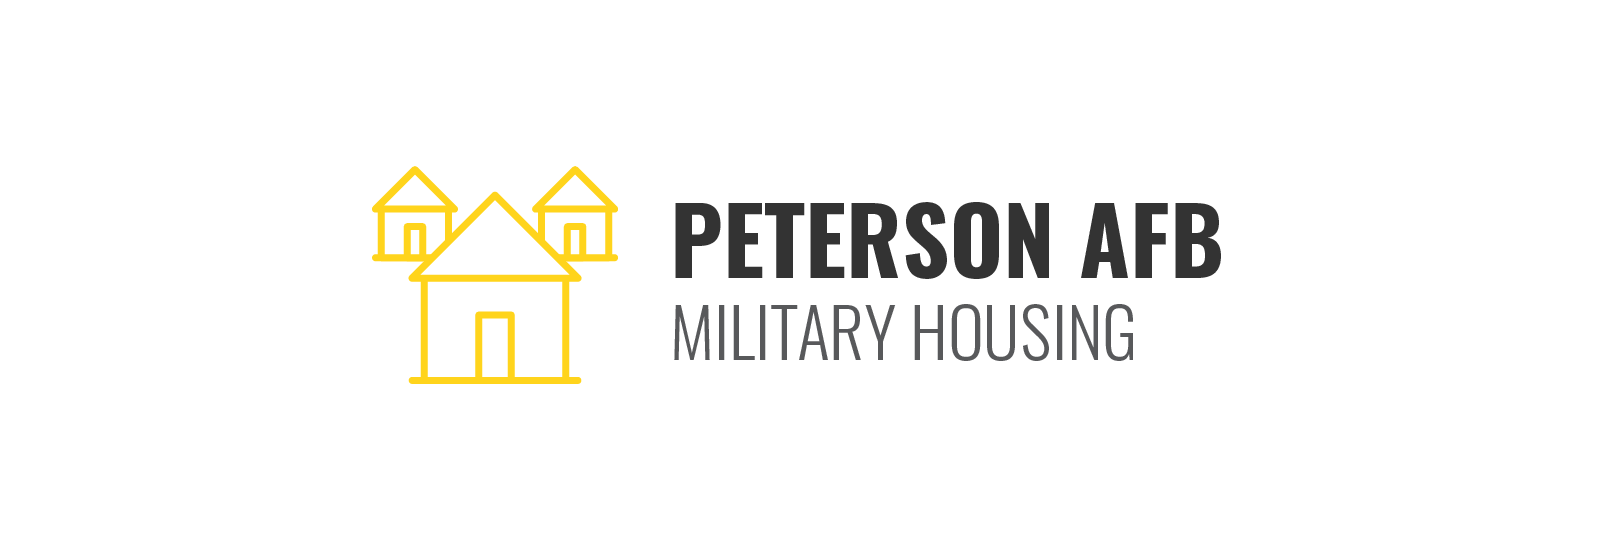 Peterson AFB Housing Options